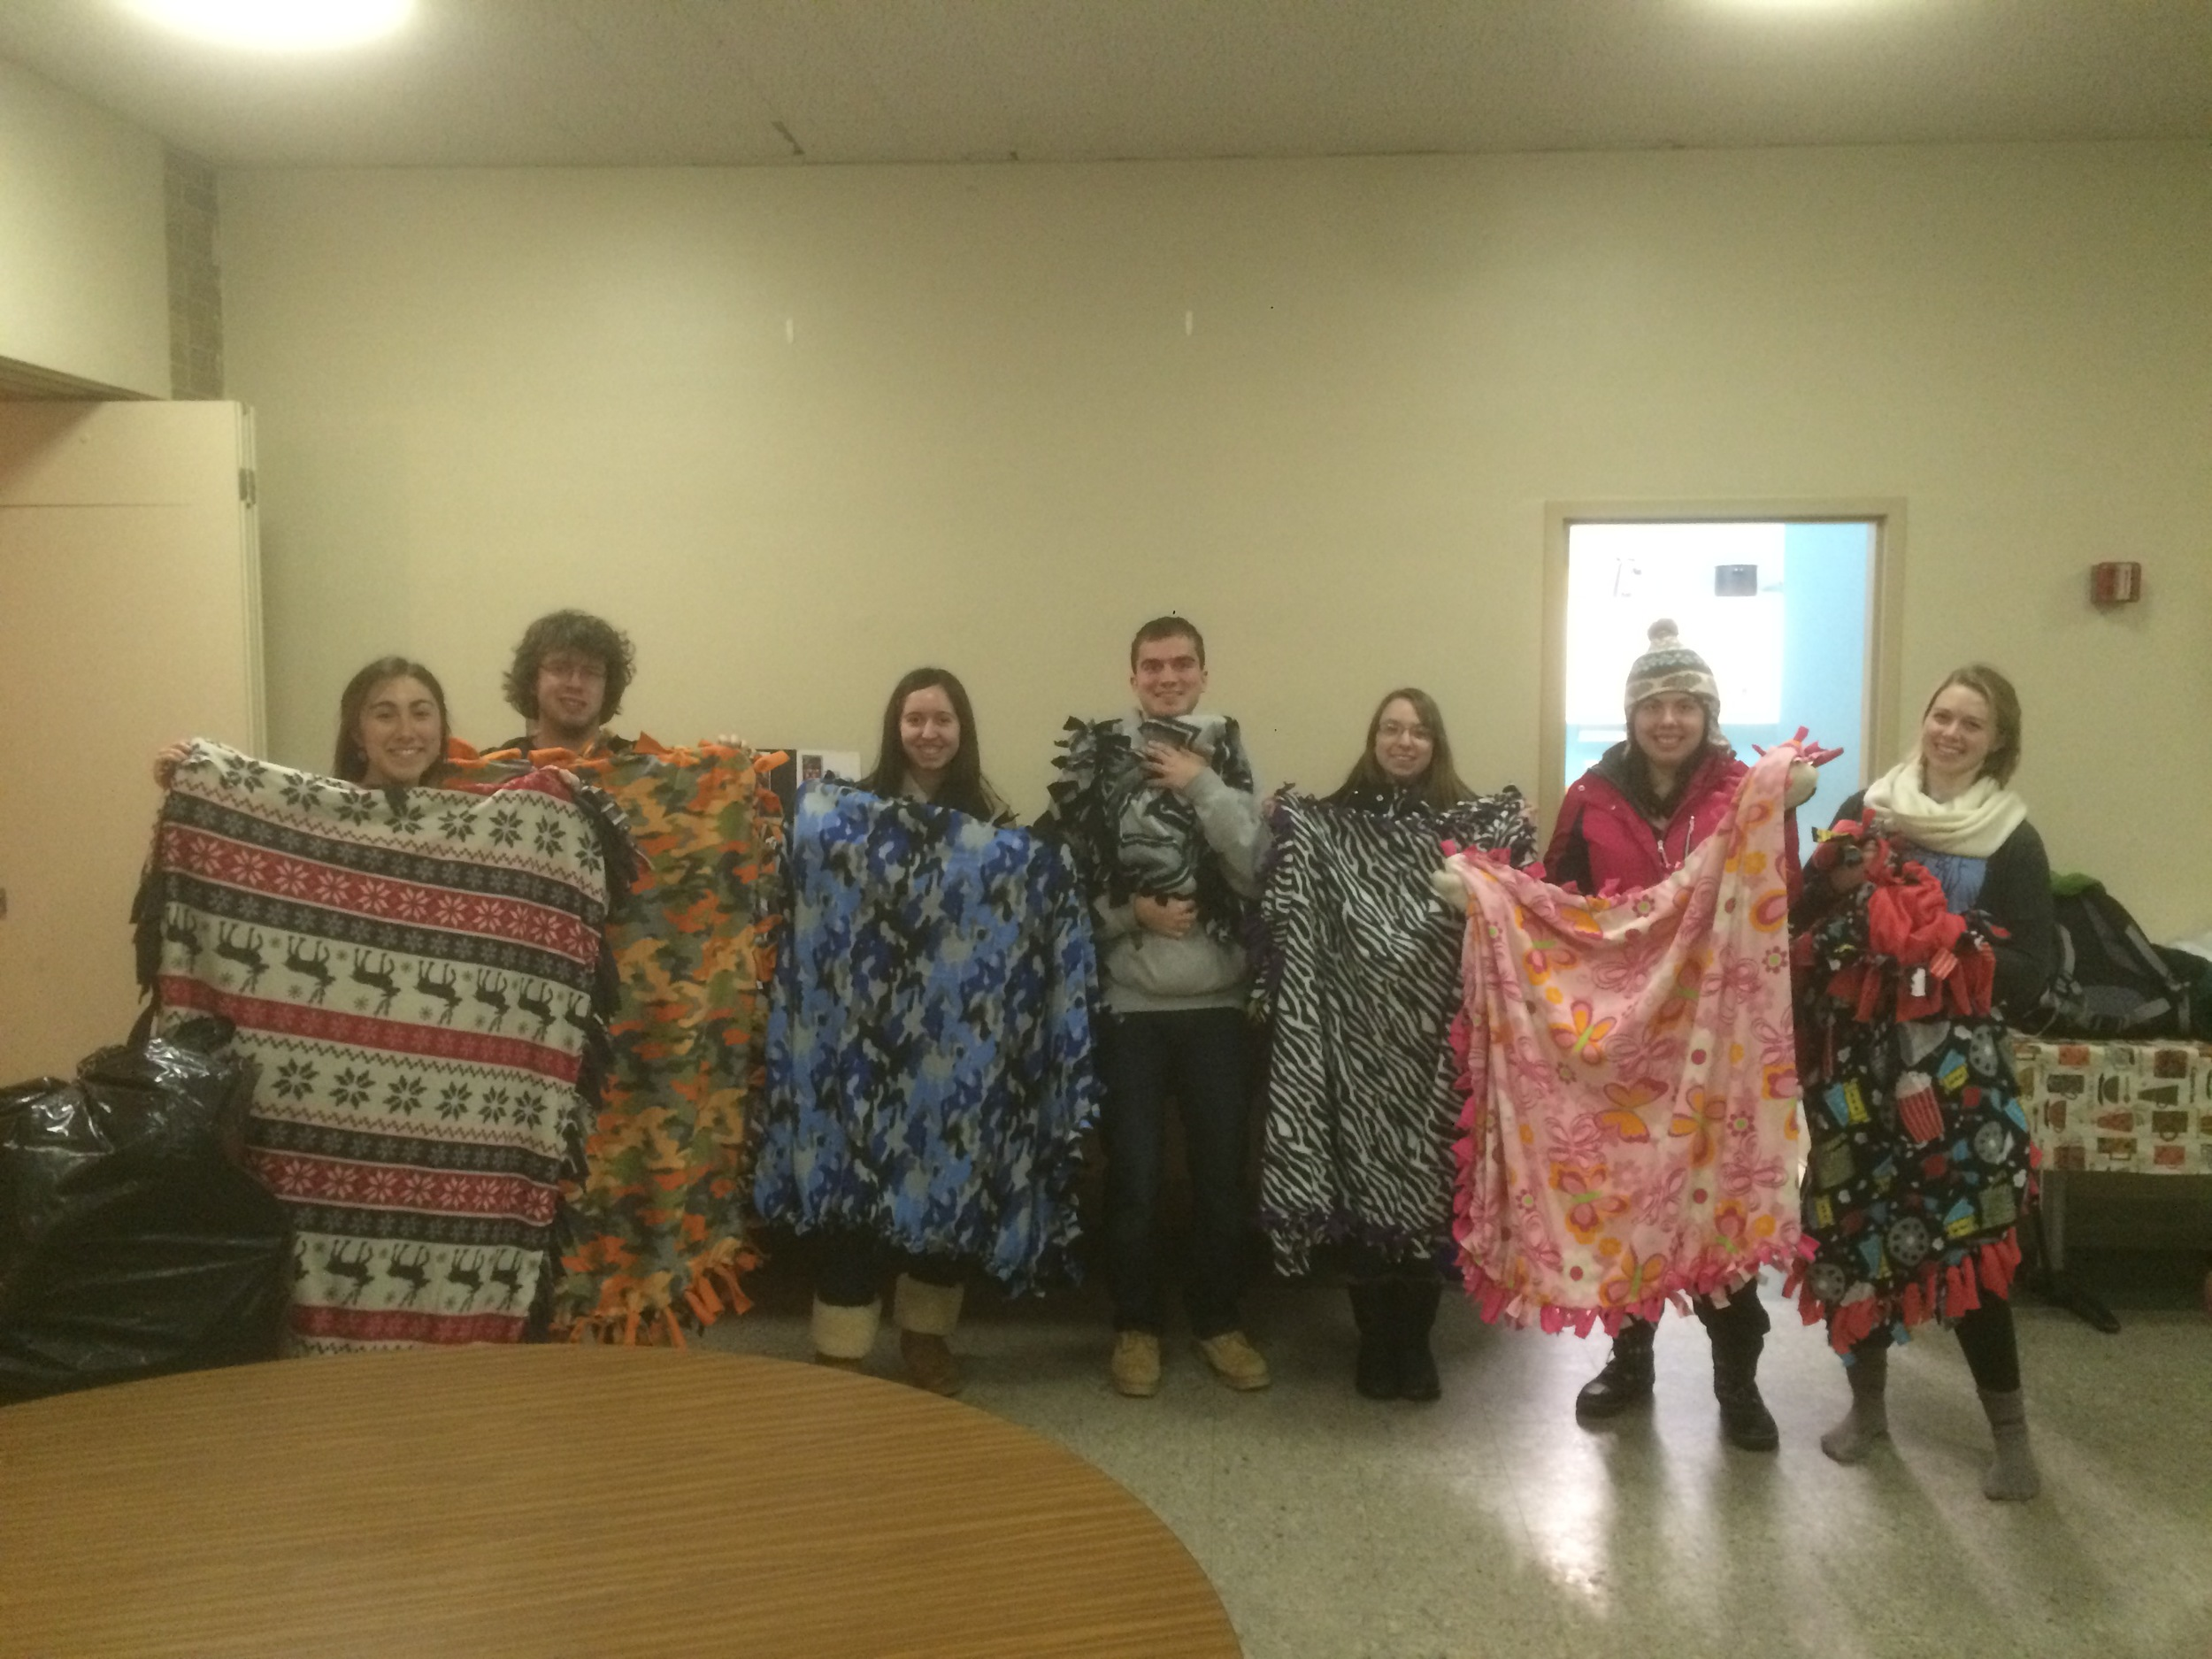 URI Newman Club you guys are the best!!! Thanks so much for the awesome blanketsyou madefor HopeFullRI.